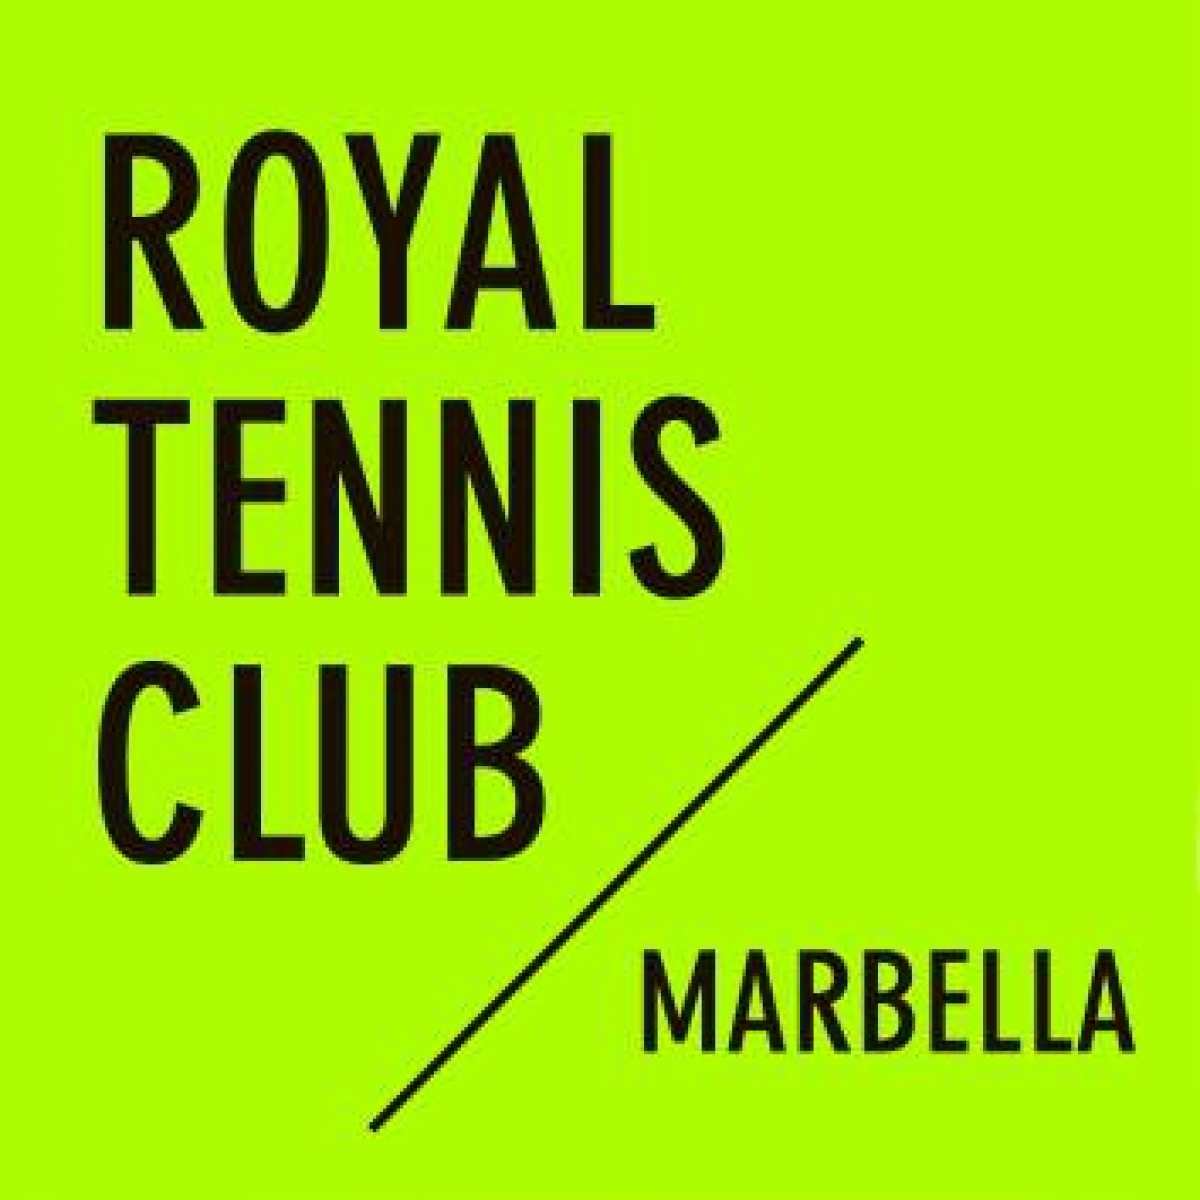 Royal Tenis Club Marbella